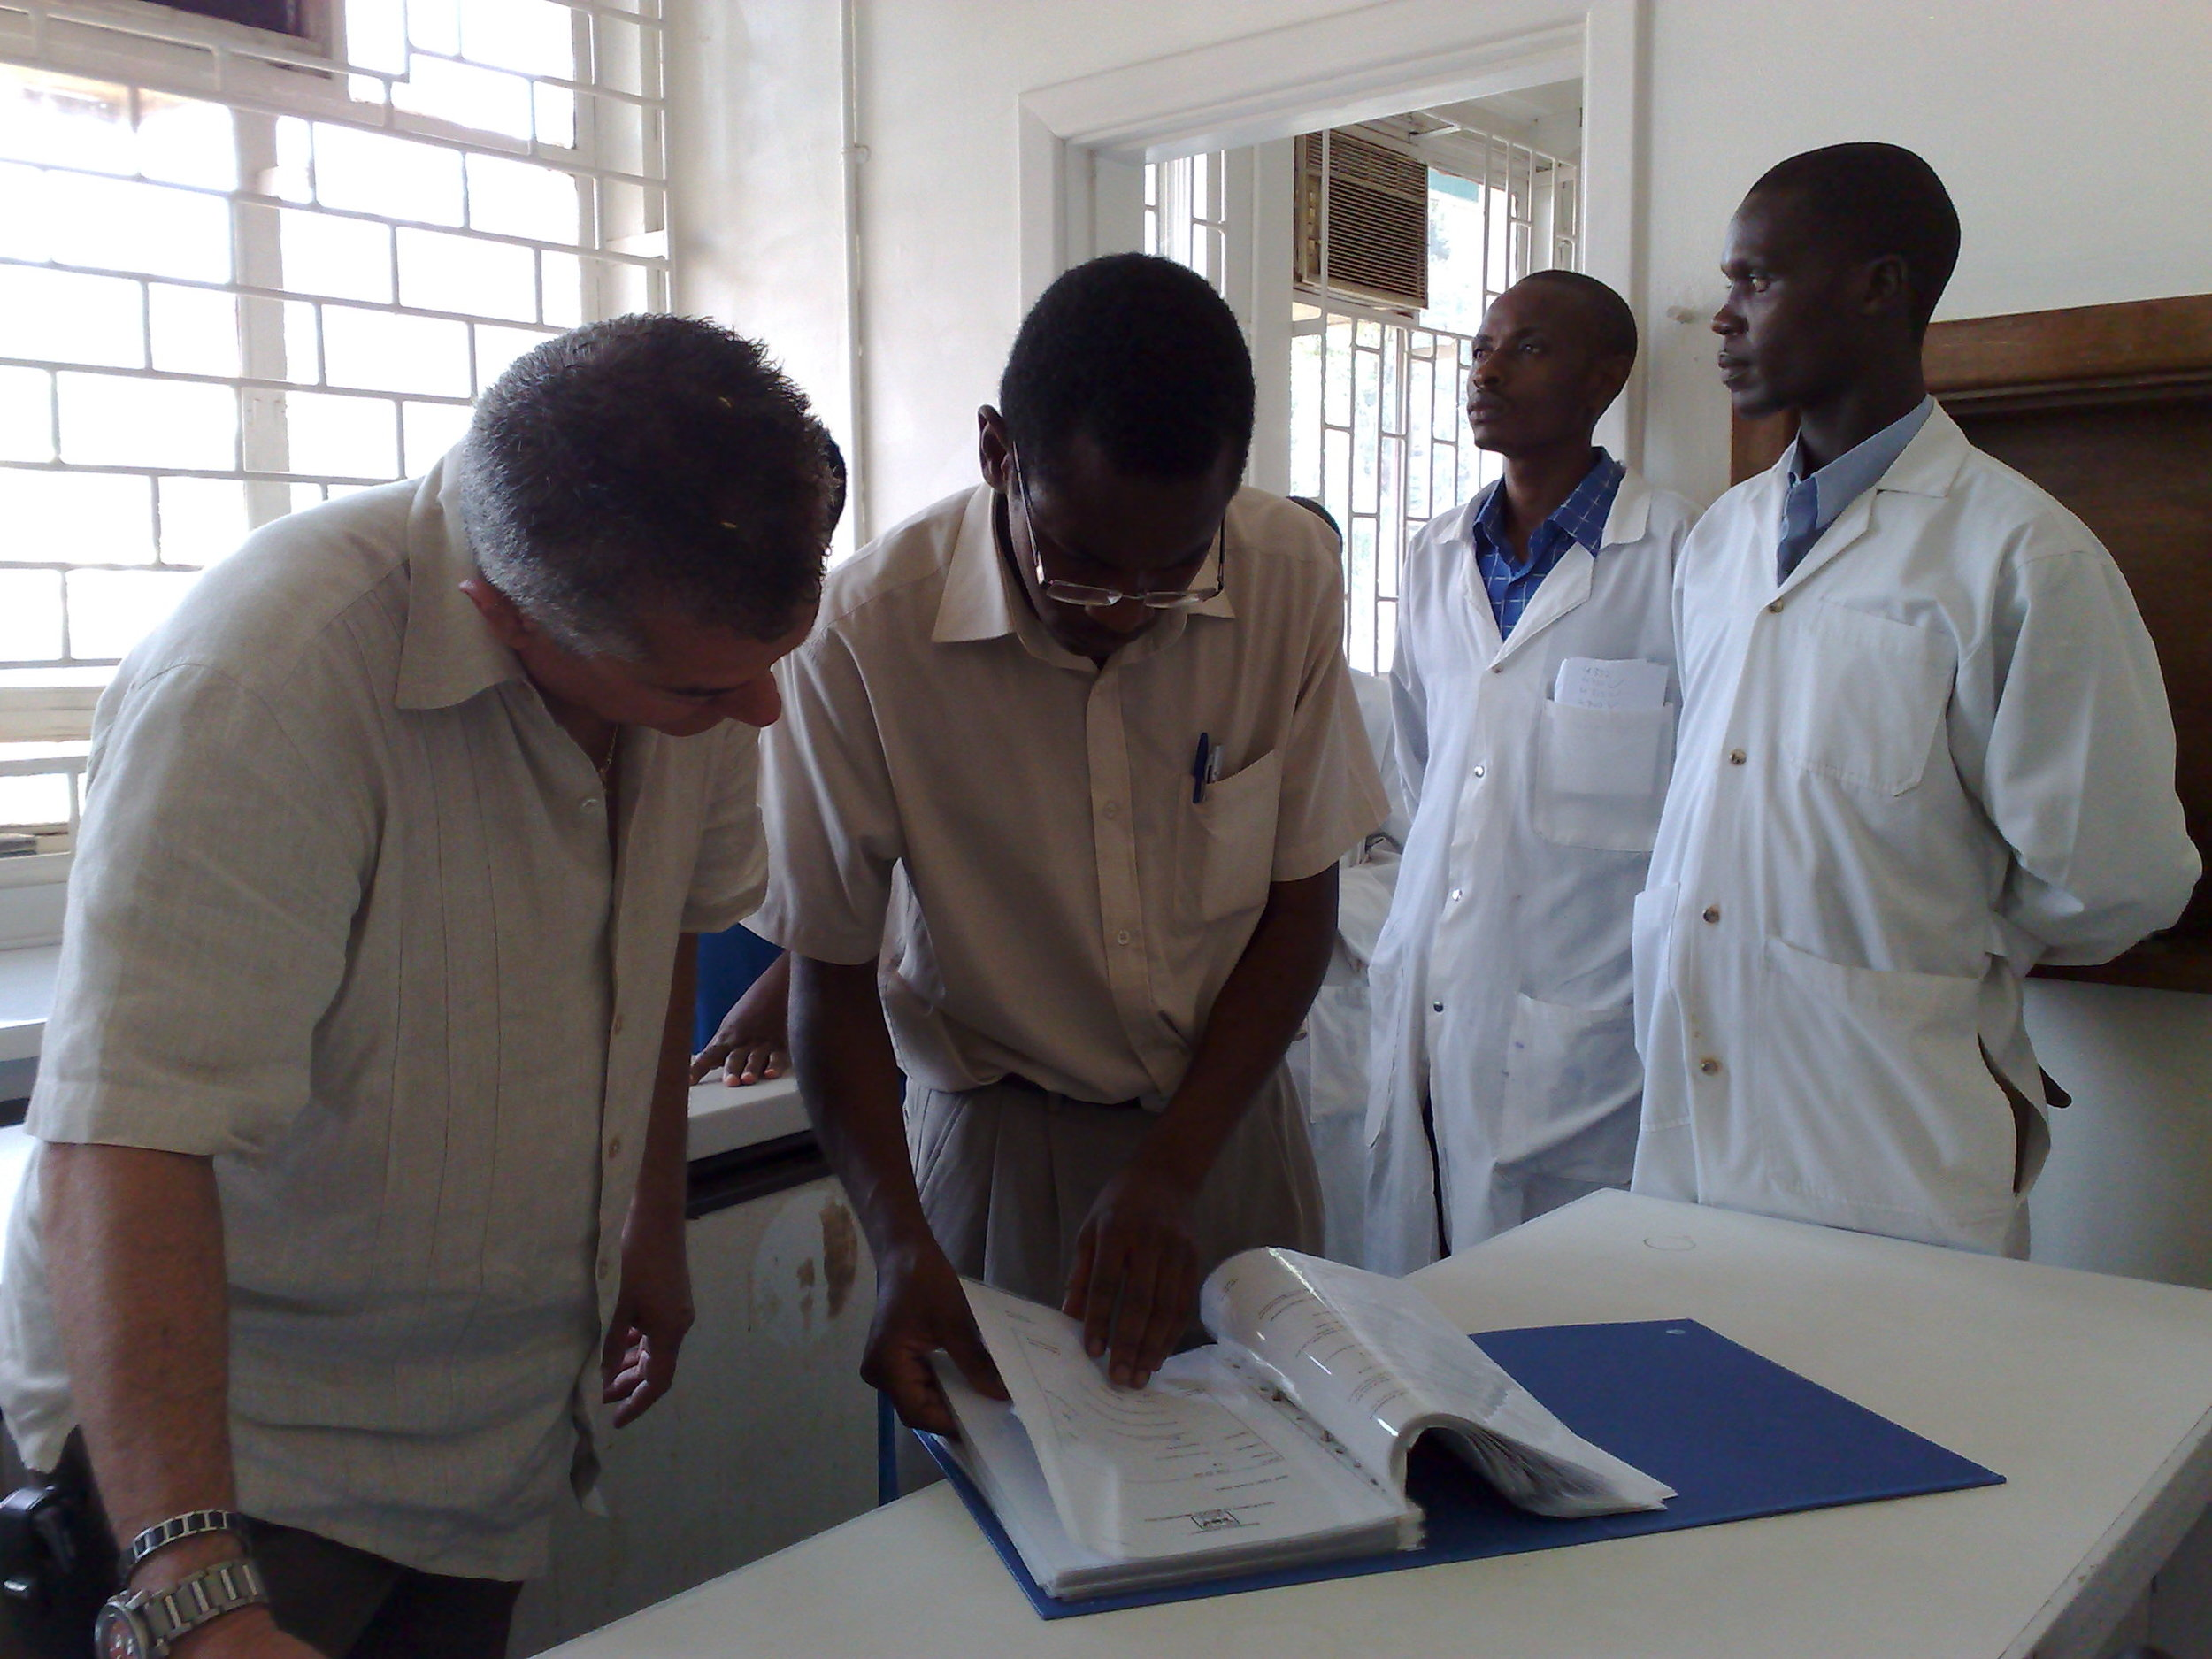 MICROBIOLOGY GRADUATE STUDENTS FROM MAKERERE UNIVERSITY HAVE CARRIED OUT LABORATORY ASSESSMENTS ON 23 HOSPITAL LABORATORIES AROUND UGANDA.